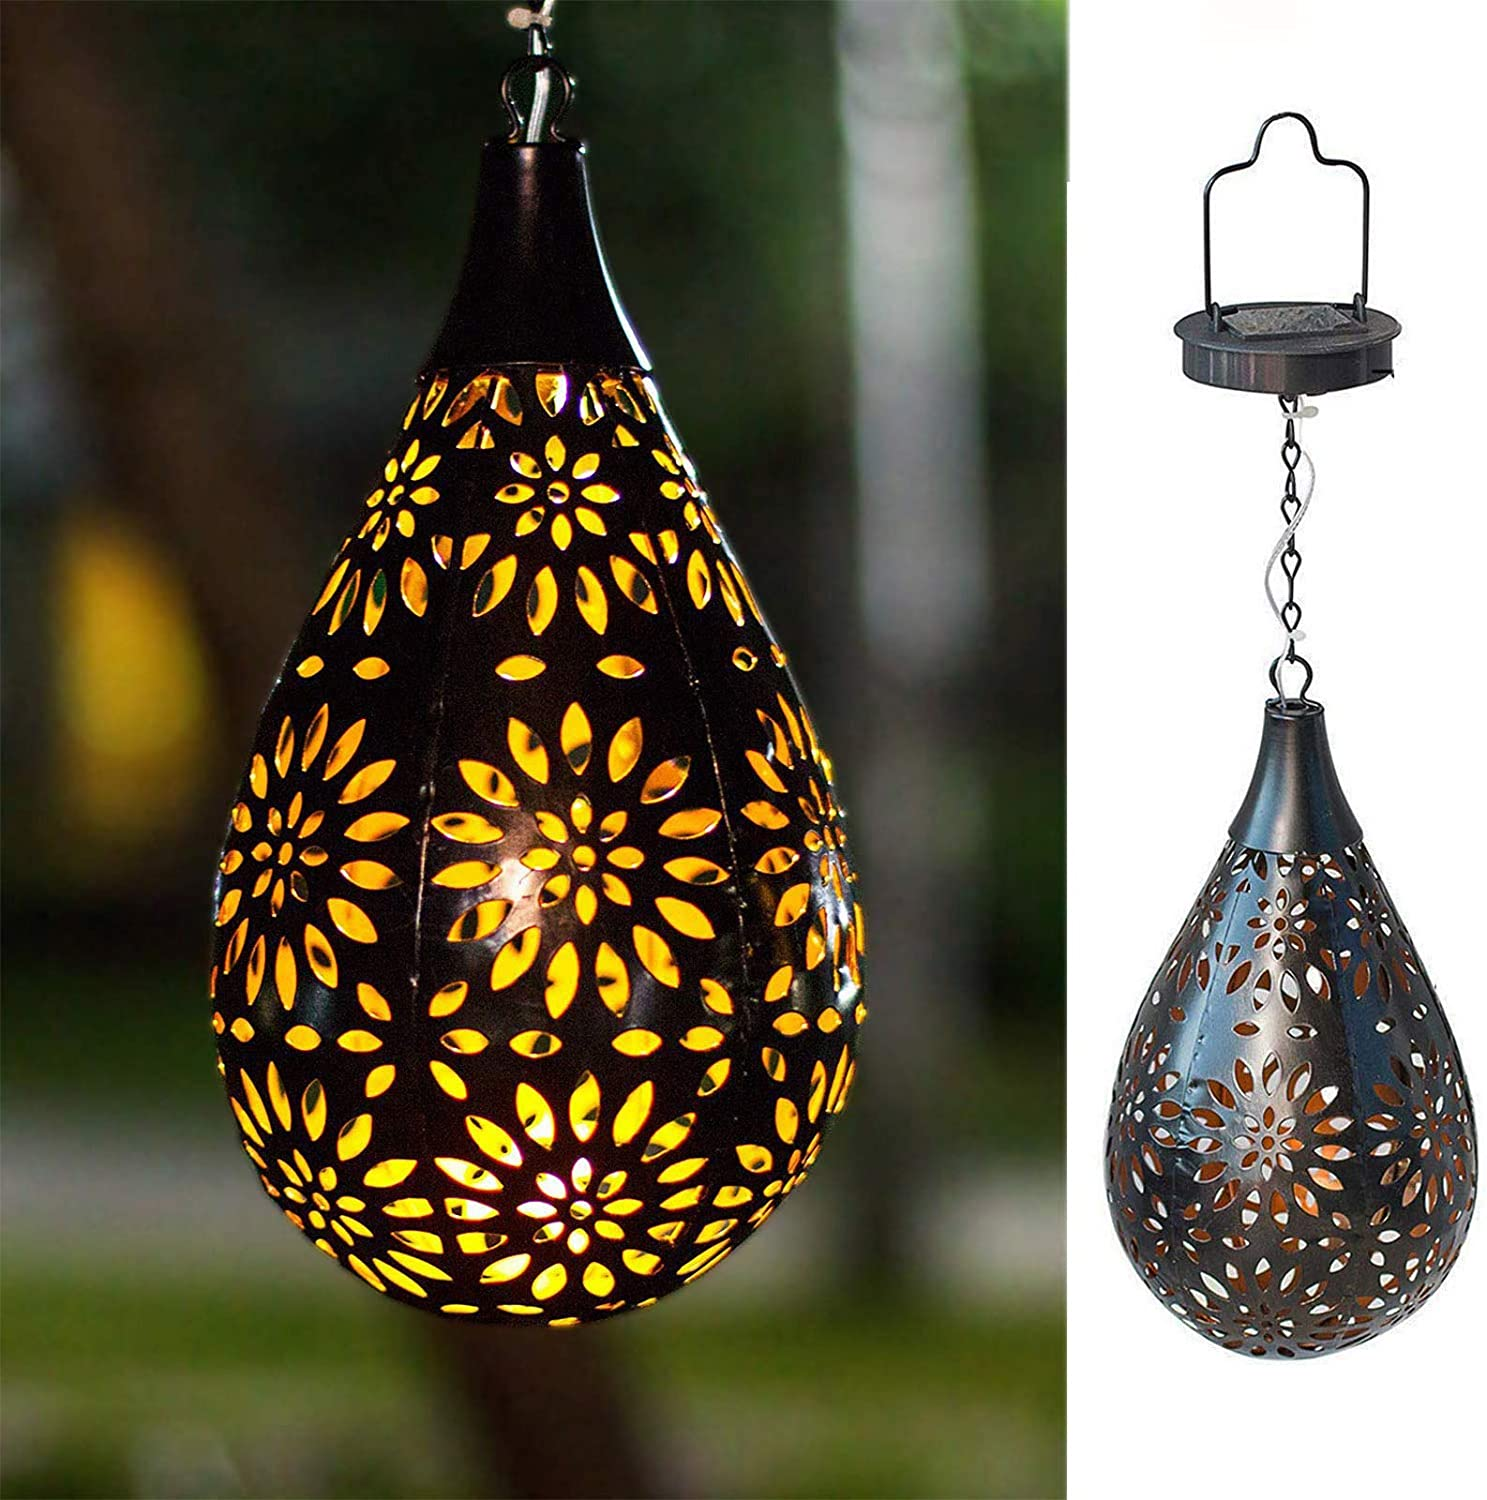 BOAER Hanging Solar Lights Outdoor (2 Pack) Garden Boho LED Flower Waterproof Decorative Metal Light for Porch Garden Outdoor (2 Pack)